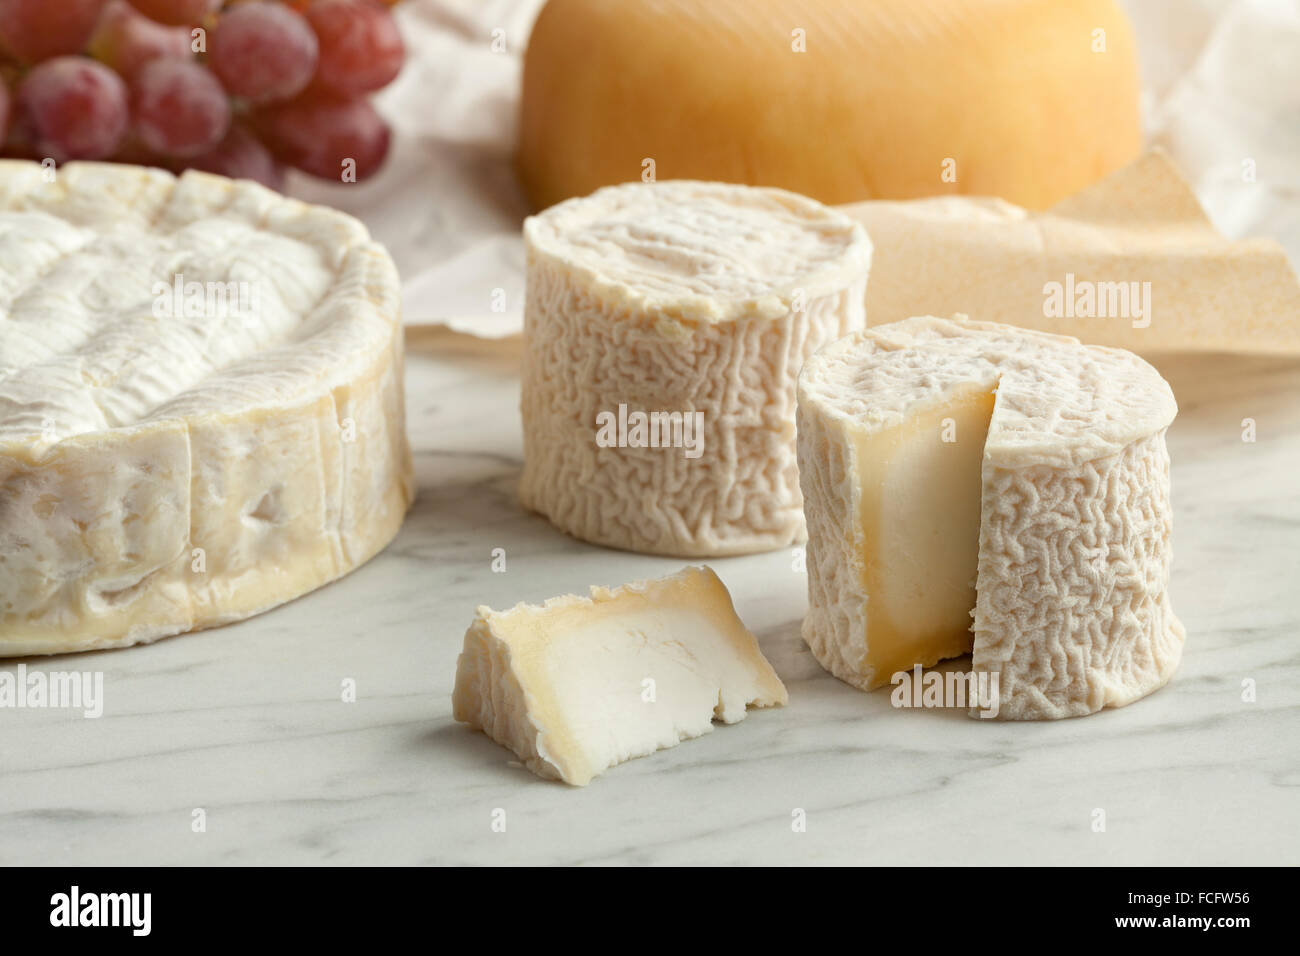 French cheese platter with camembert,goats cheese and grapes as dessert - Stock Image